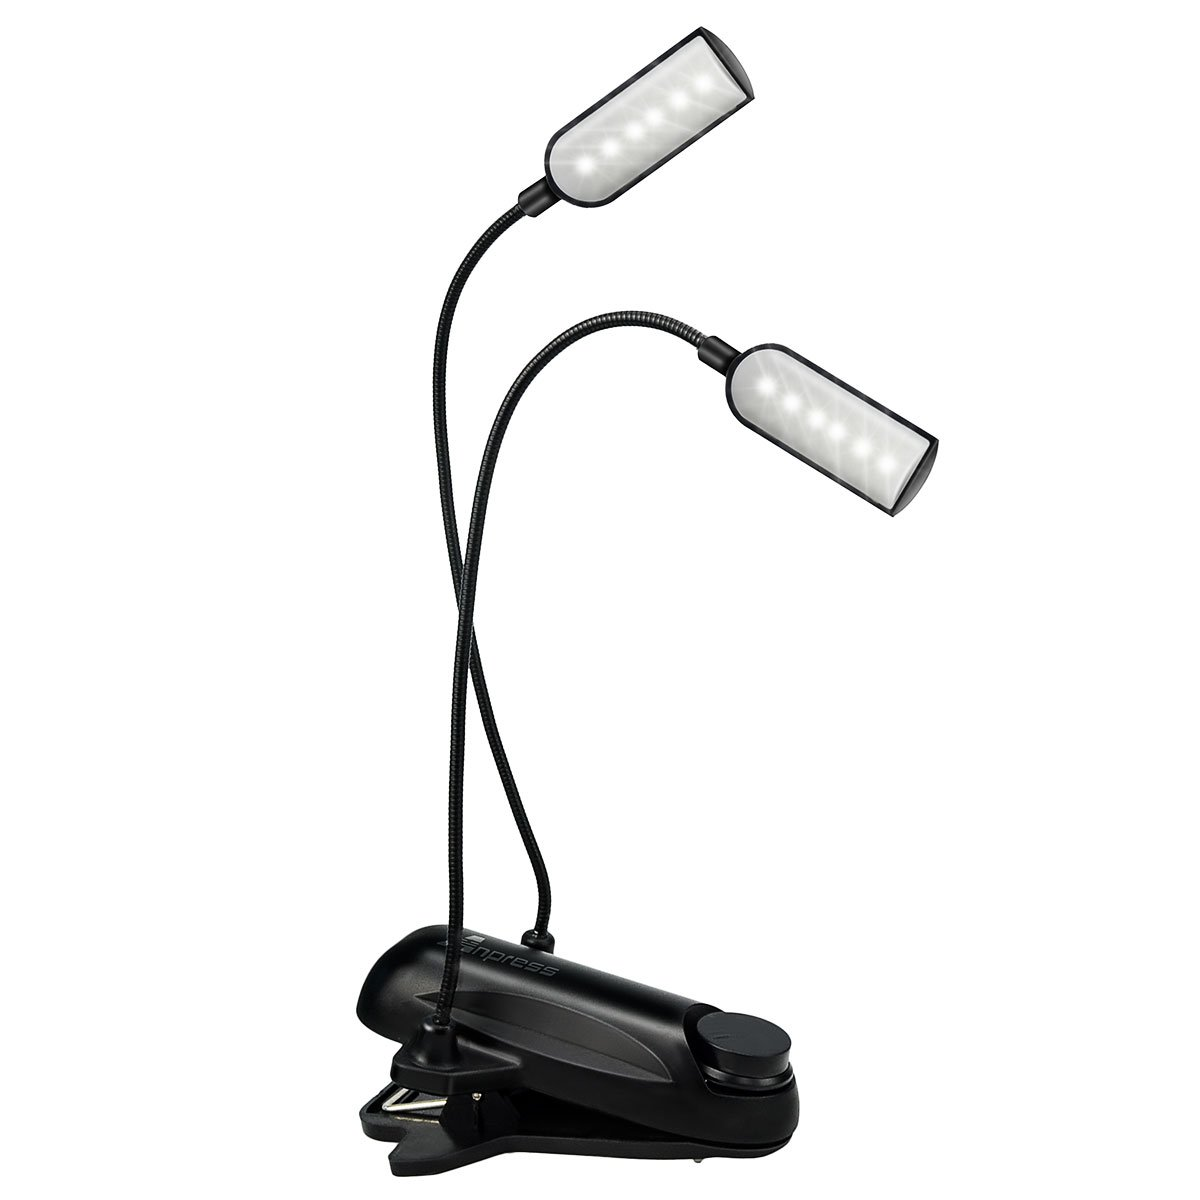 Anpress Music Stand Clip on Lights Dual Head 12 LED USB Rechargeable Timing Function Stepless Dimmable Book Reading Light